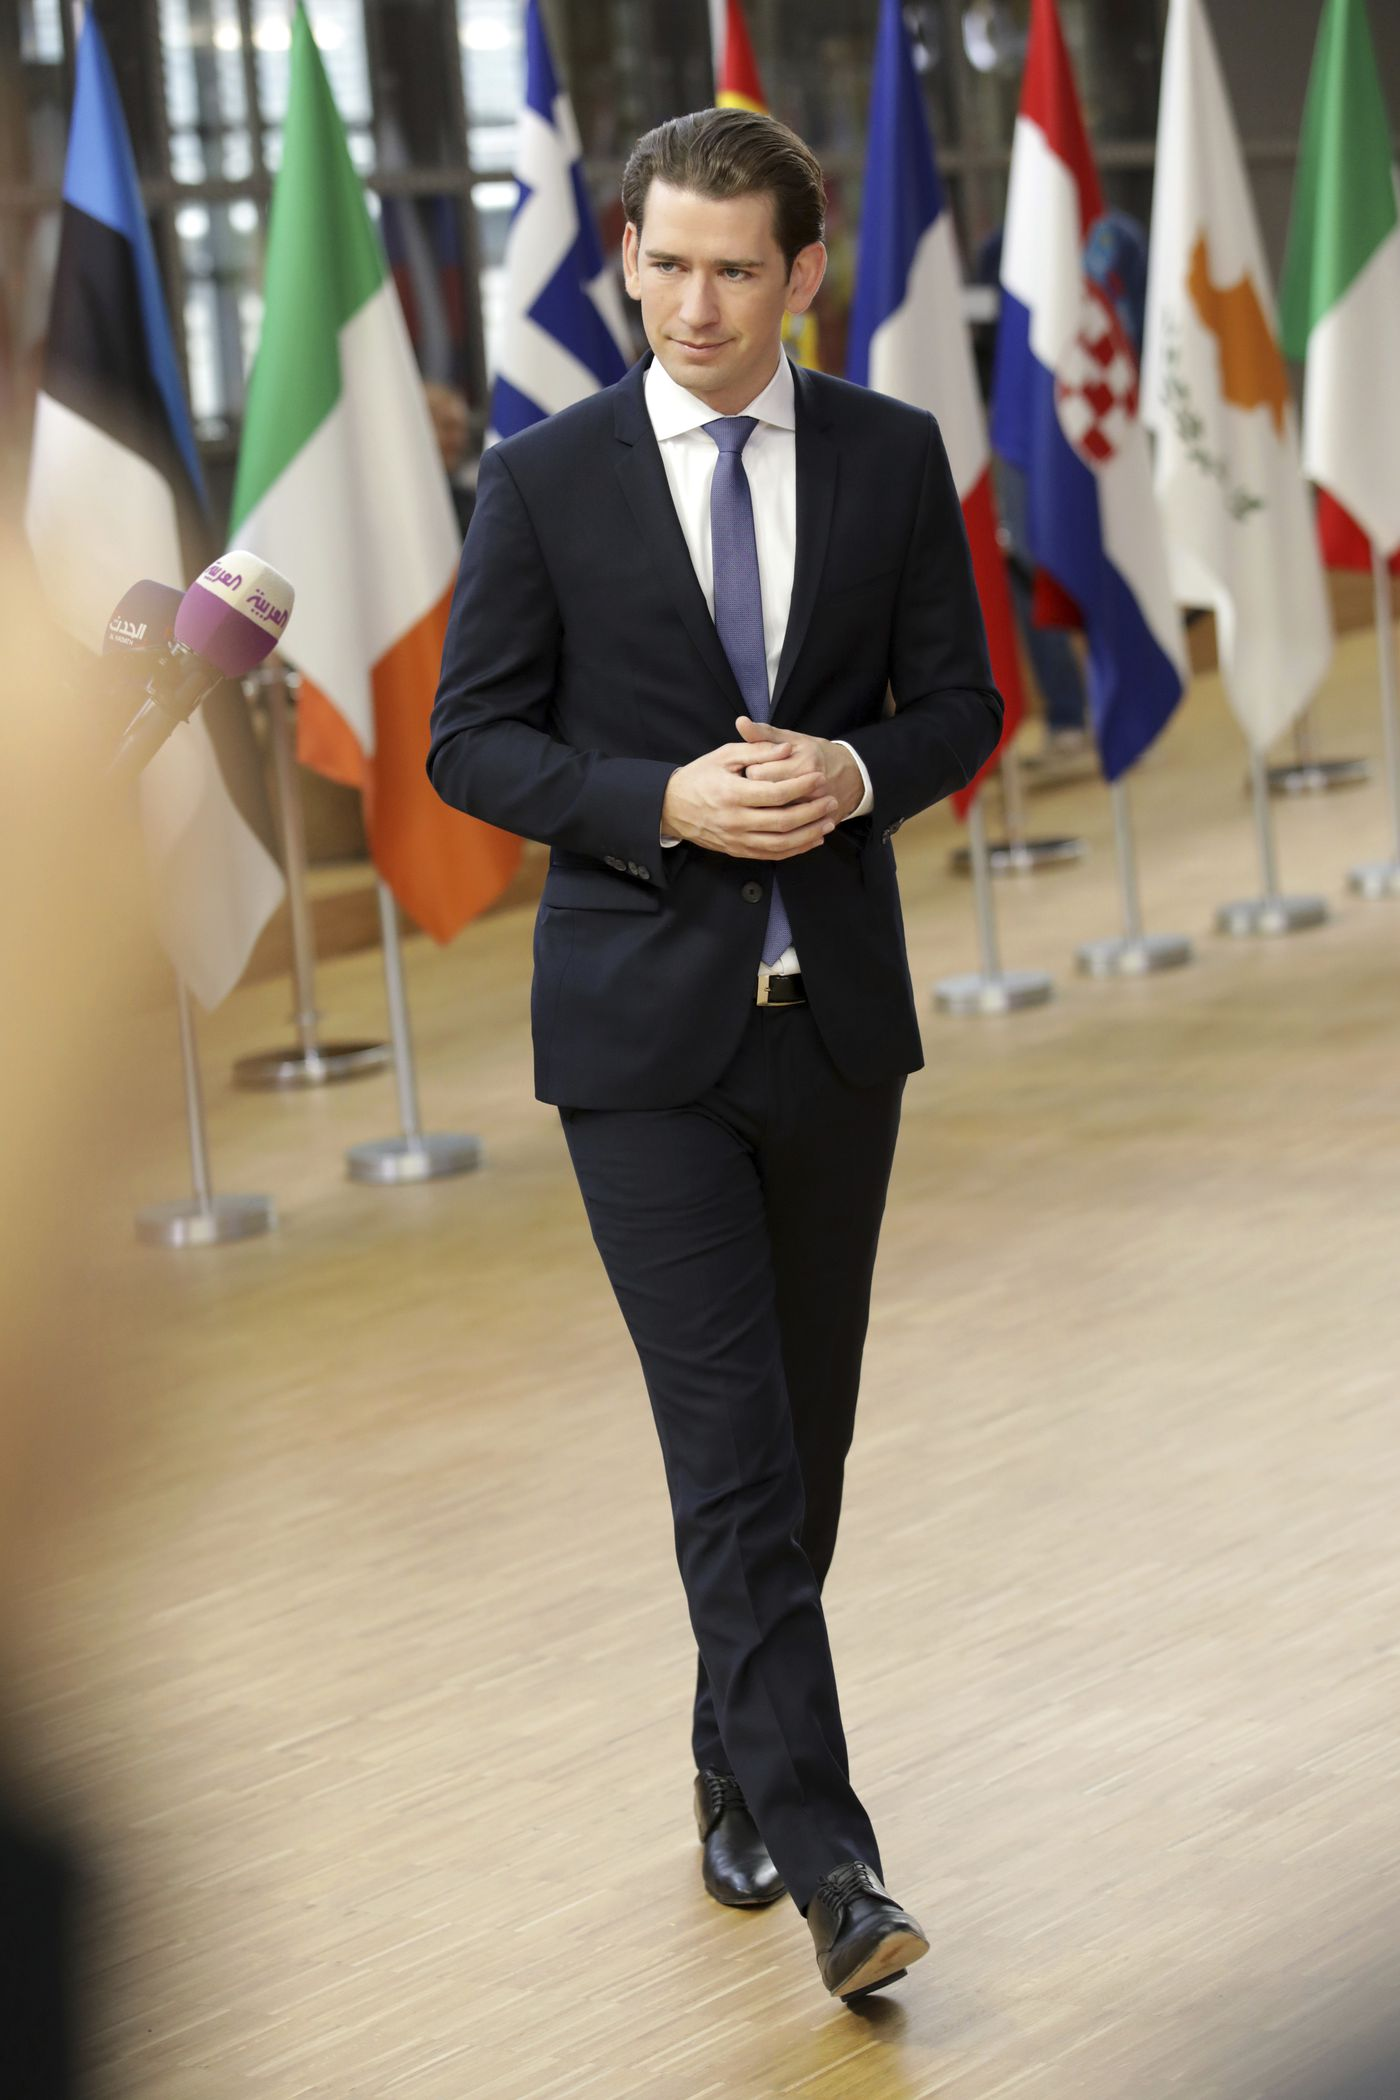 Austrian Chancellor Sebastian Kurz speaks with the media as he arrives for an EU summit at the Europa building in Brussels, Thursday, Oct. 18, 2018. EU leaders meet for a second day on Thursday to discuss migration, cybersecurity and to try and move ahead on stalled Brexit talks. (AP Photo/Olivier Matthys)